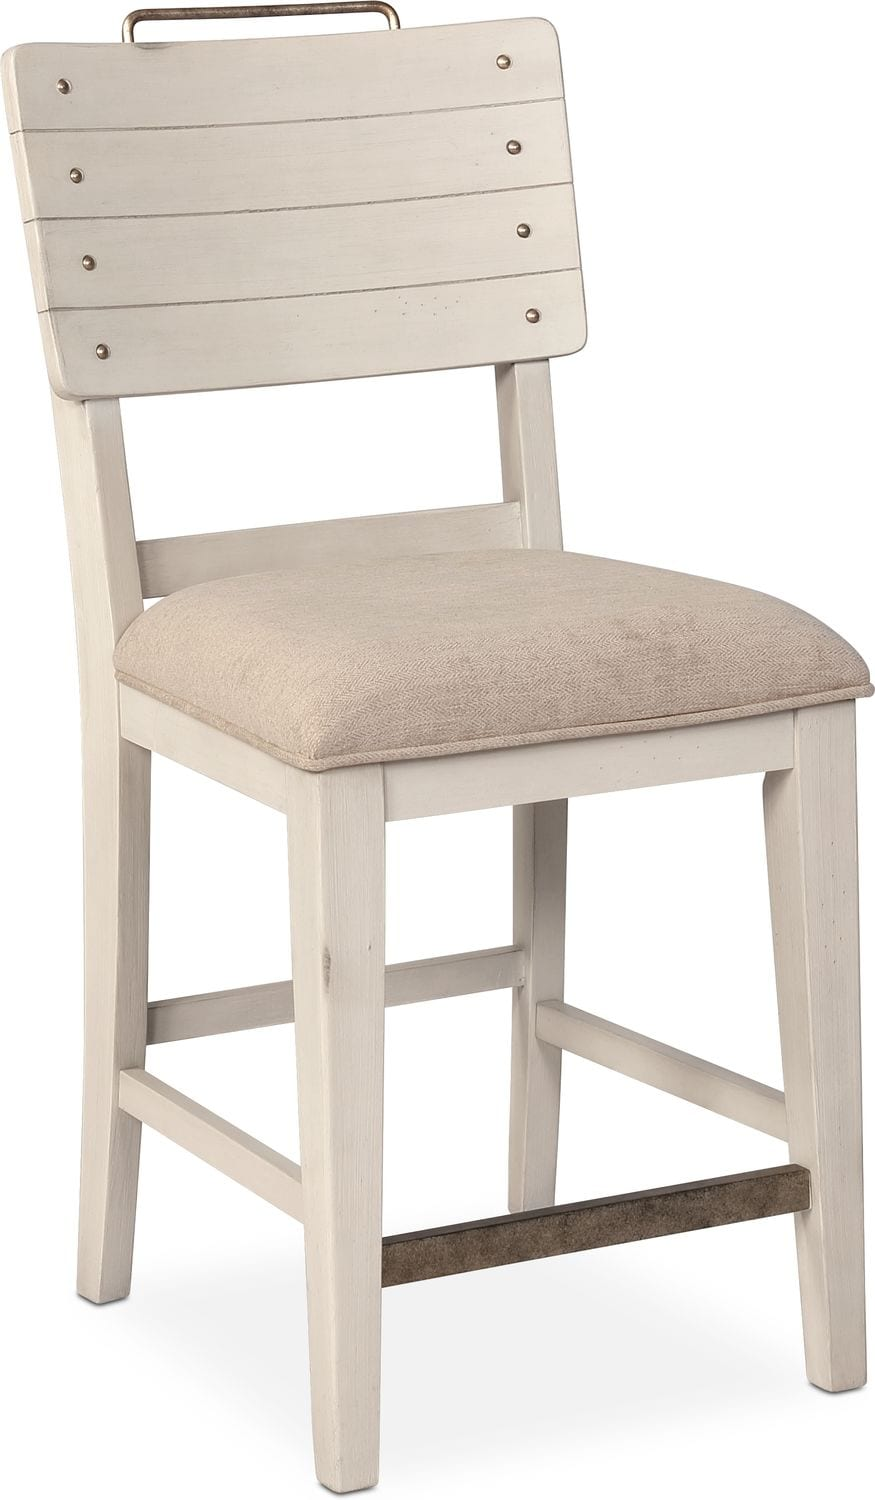 Dining Room Furniture - New Haven Counter-Height Shiplap Stool